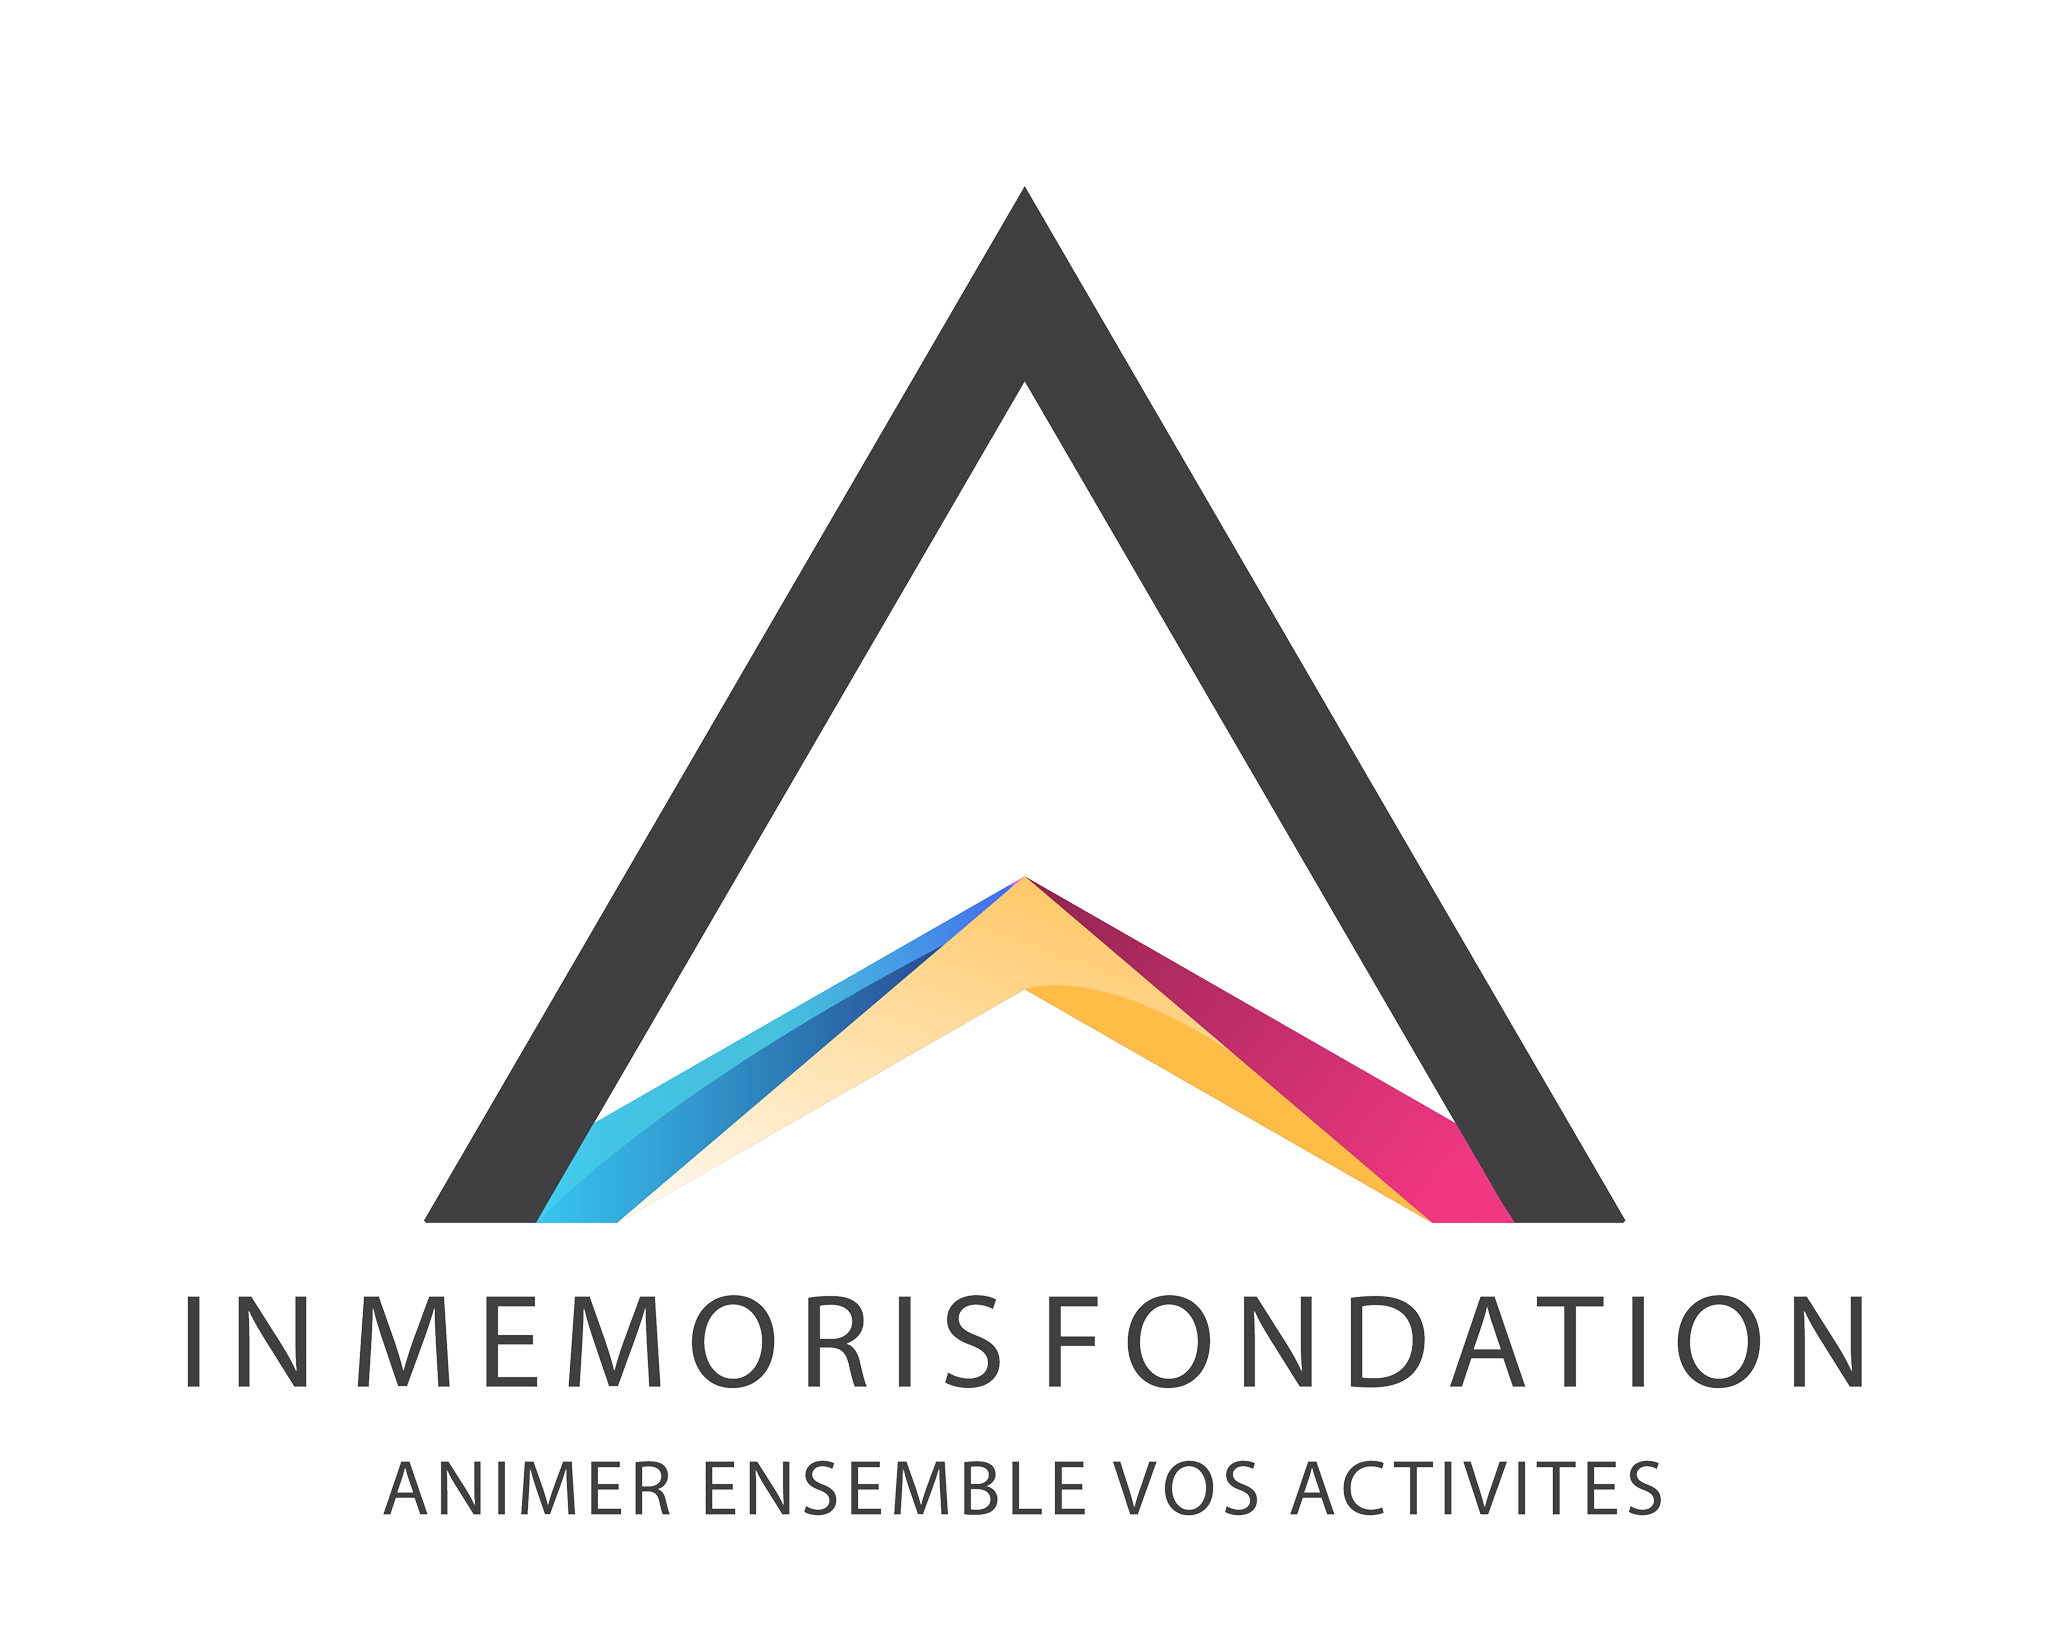 Association - In Memoris Fondation